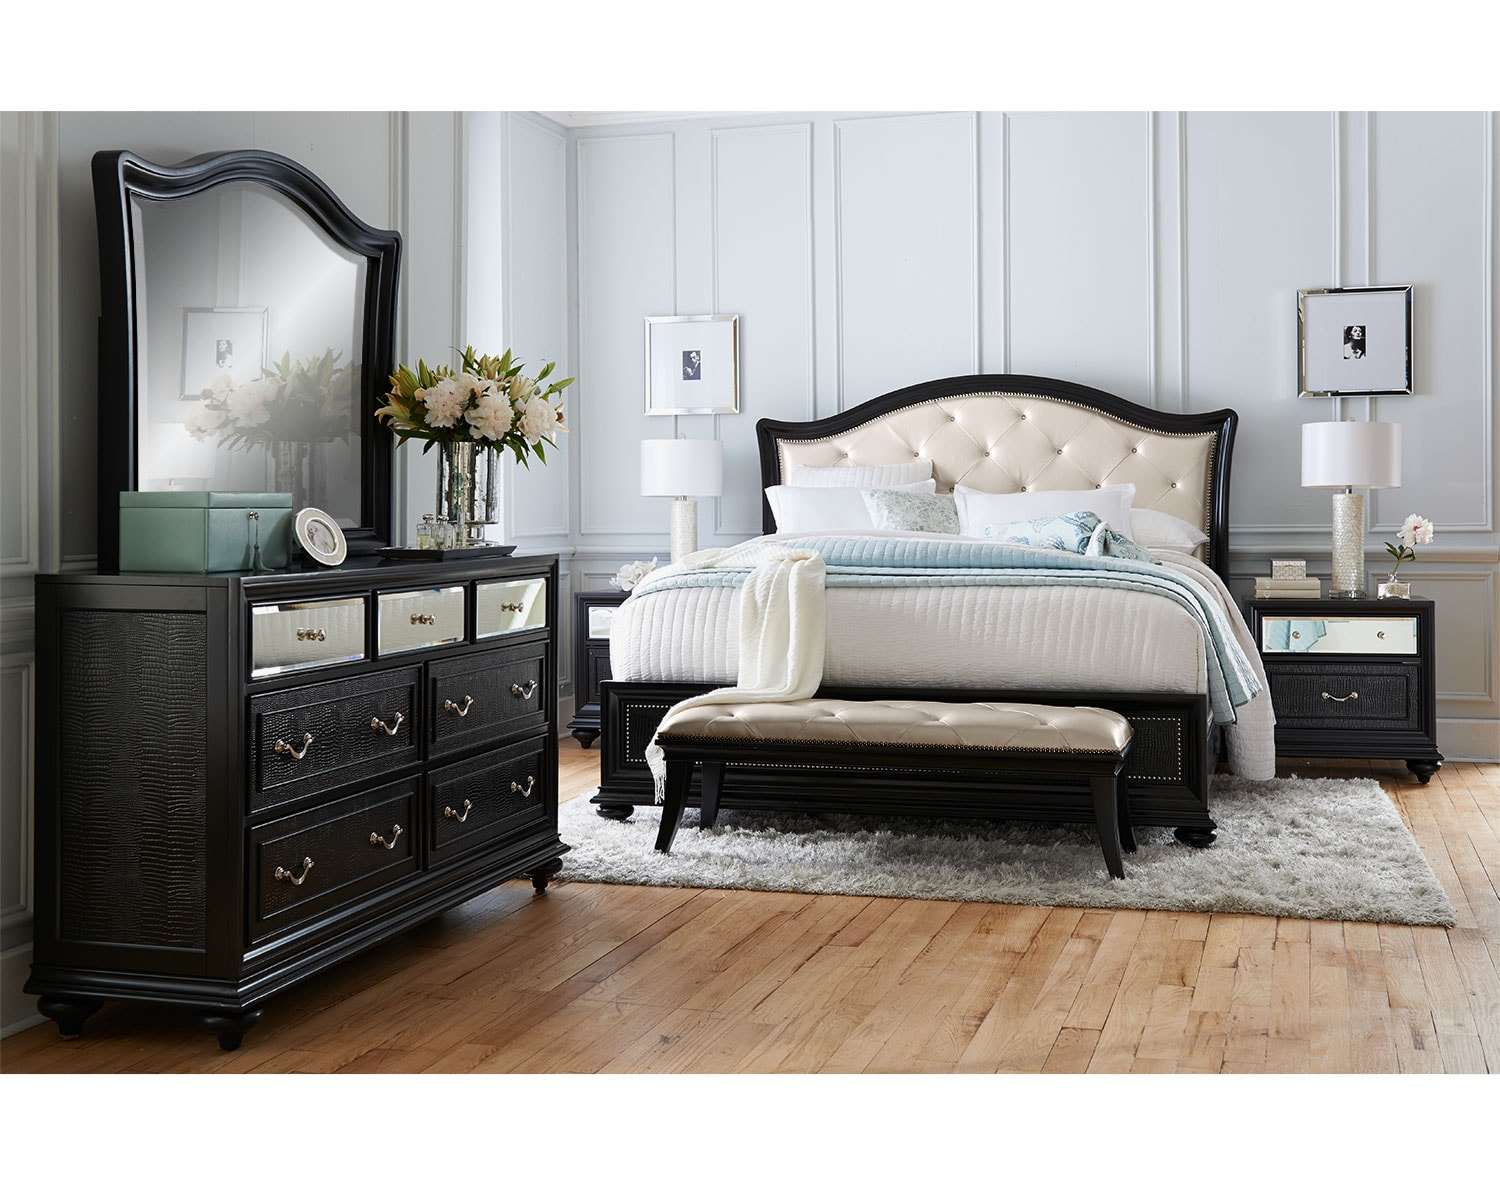 The Marilyn Collection   Ebony. The Marilyn Collection   Ebony   Value City Furniture and Mattresses